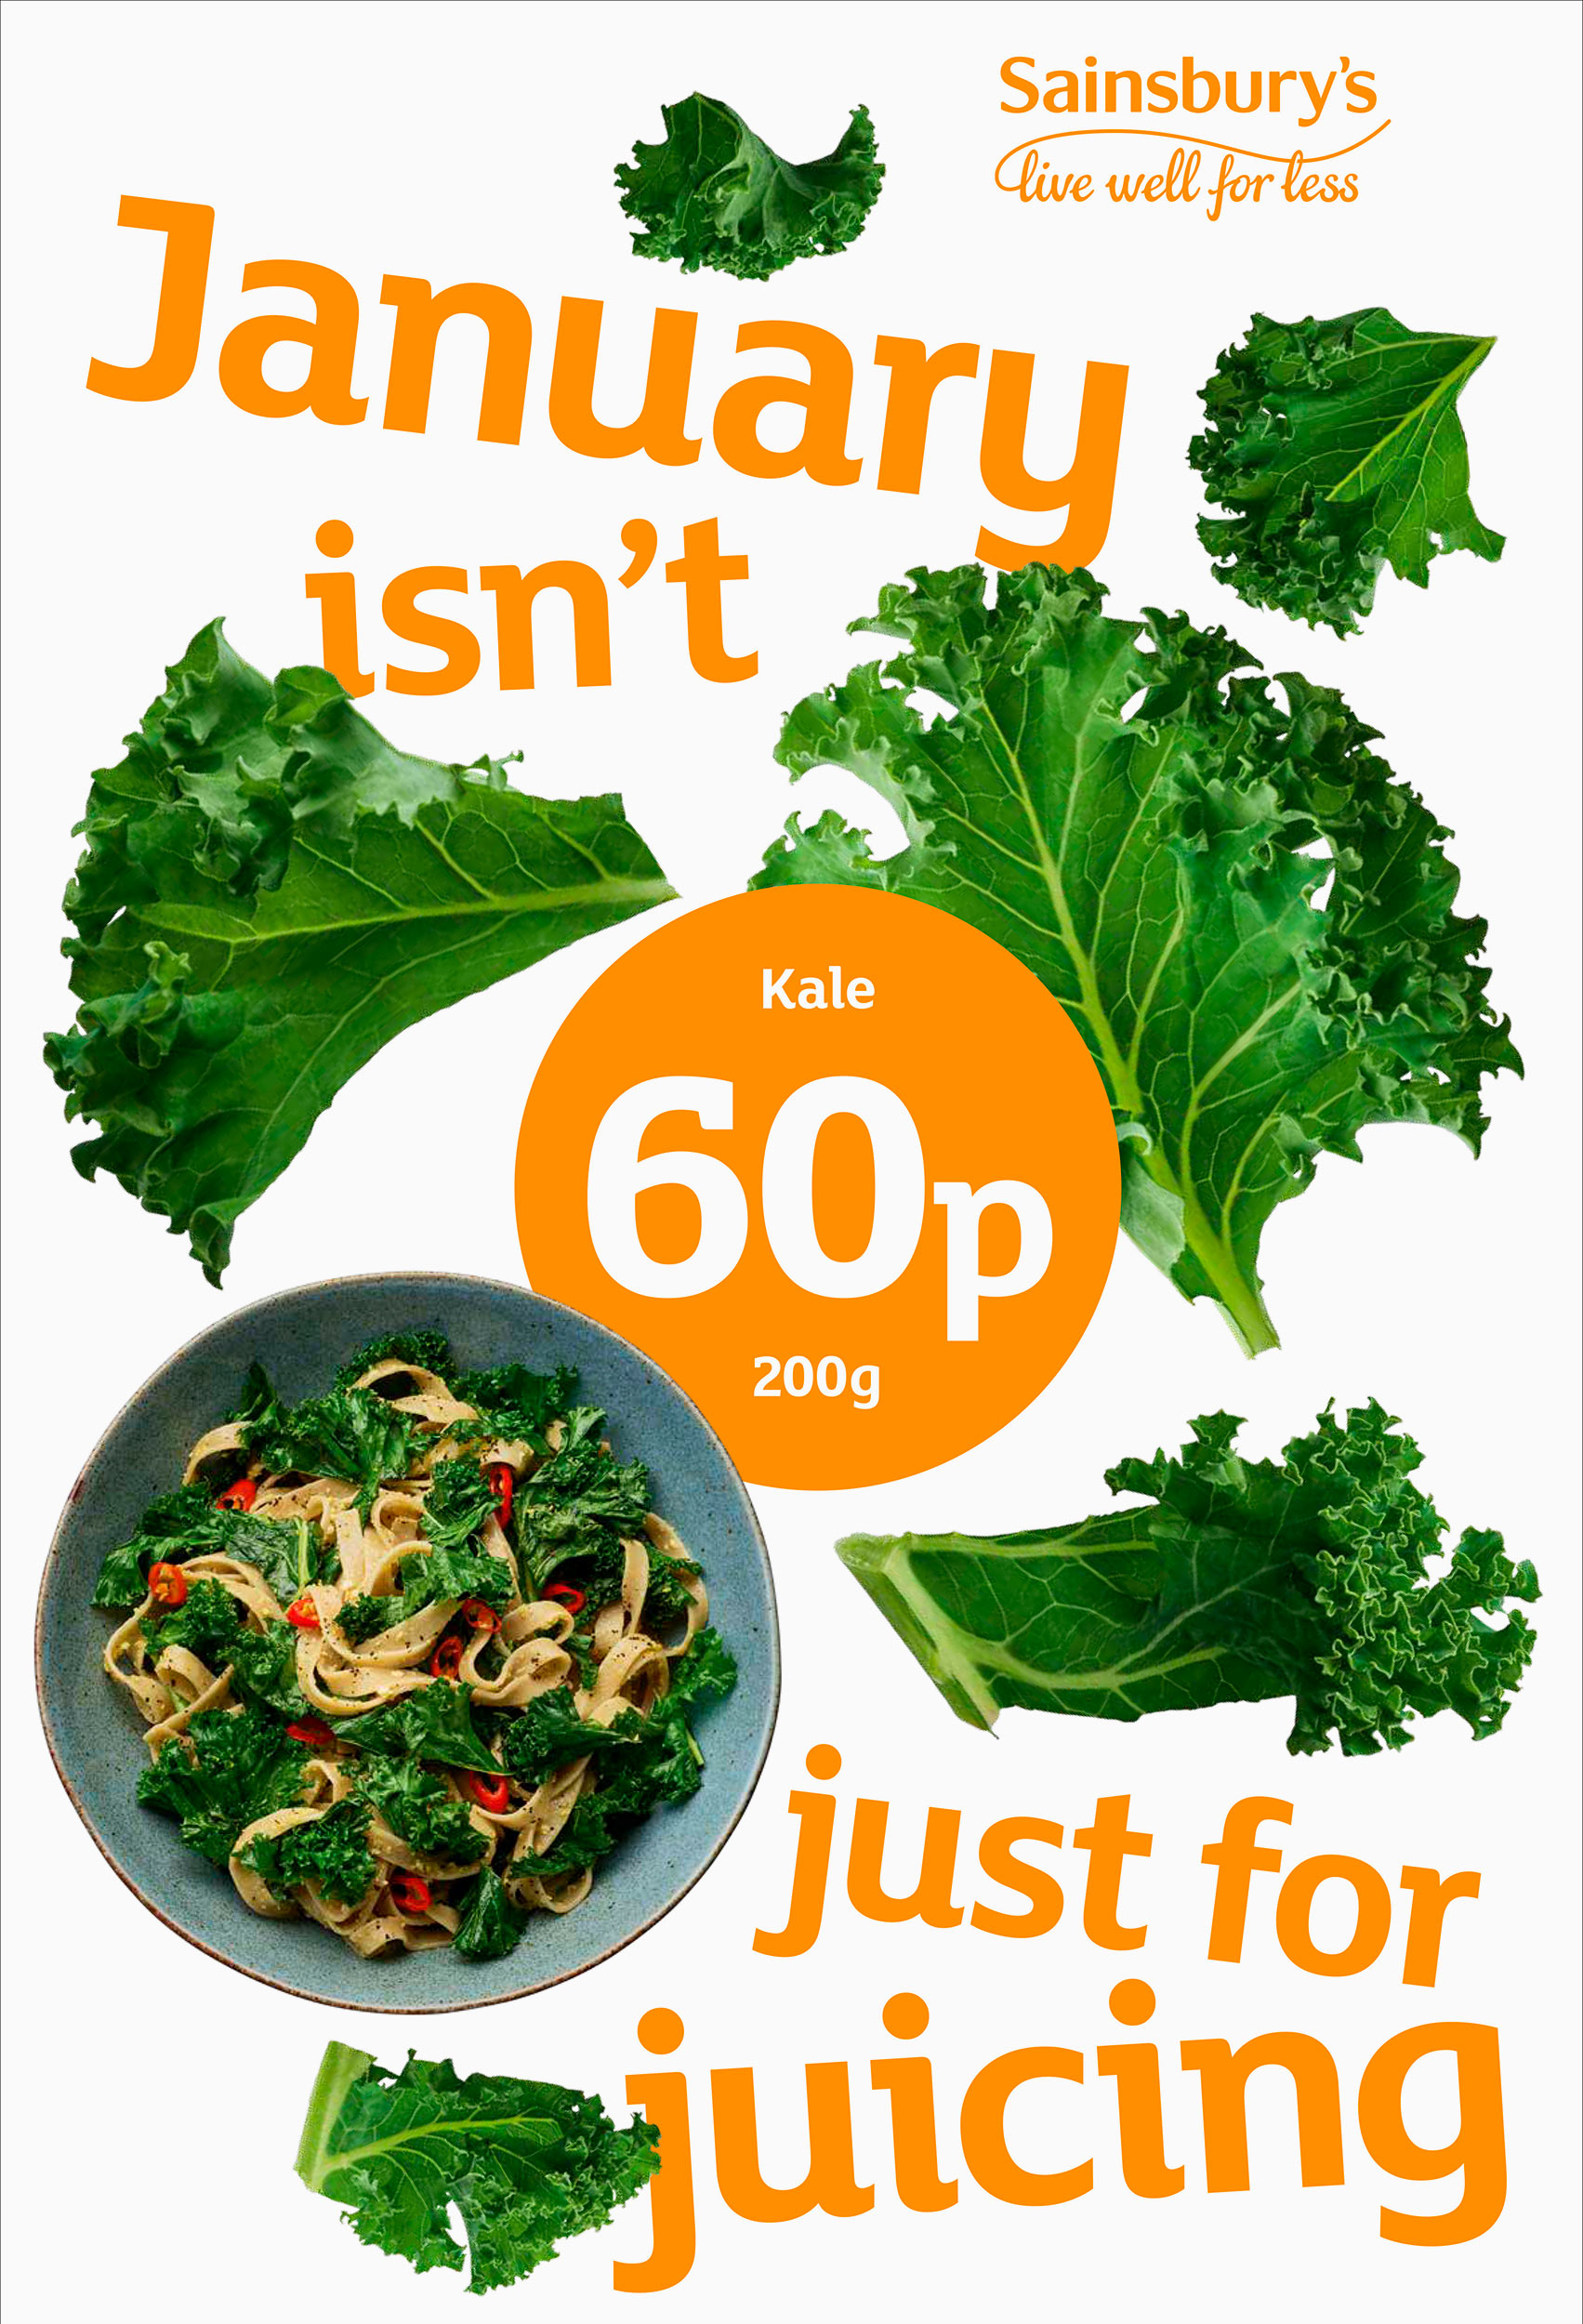 Sainsburys Value Kale | Colin Campbell - Food Photographer